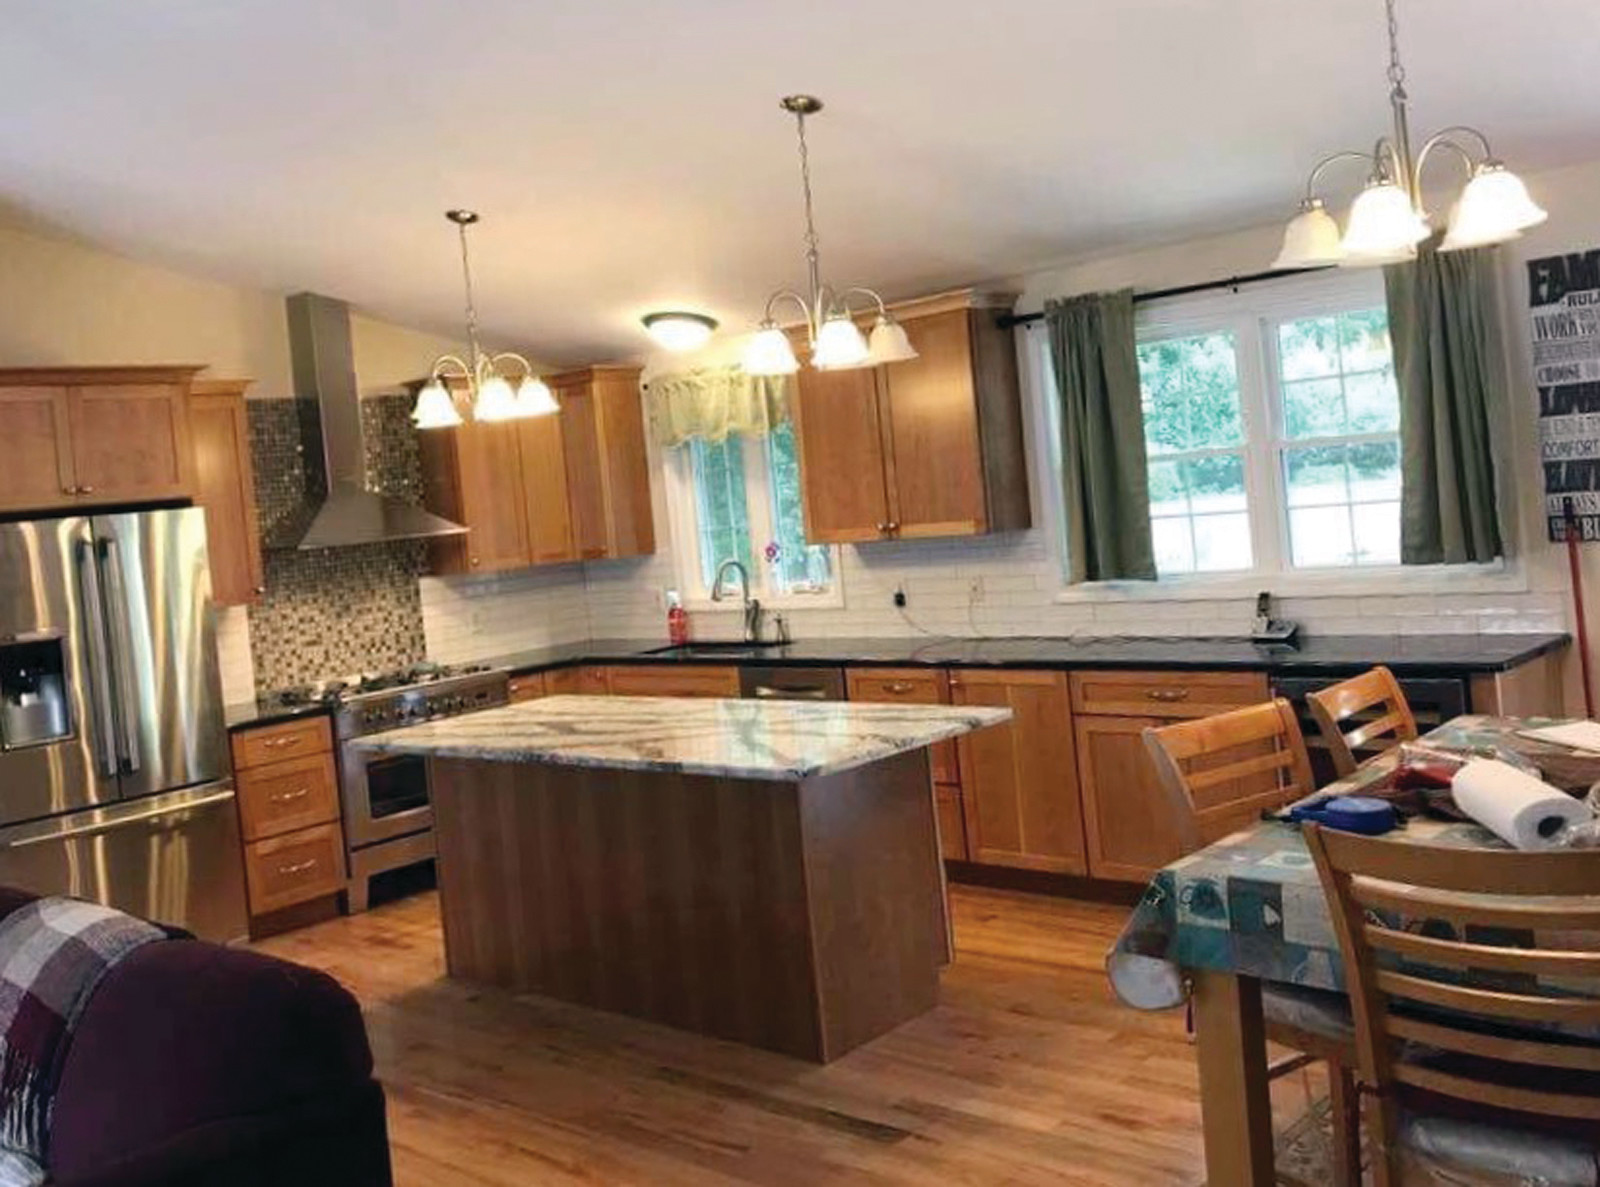 Check out the handiwork and superb craftsmanship of the team at McCormick Home Improvement, LLC., based in Warwick and ready to remodel your kitchen ~ call 401-463-7674 to see how you can get started.